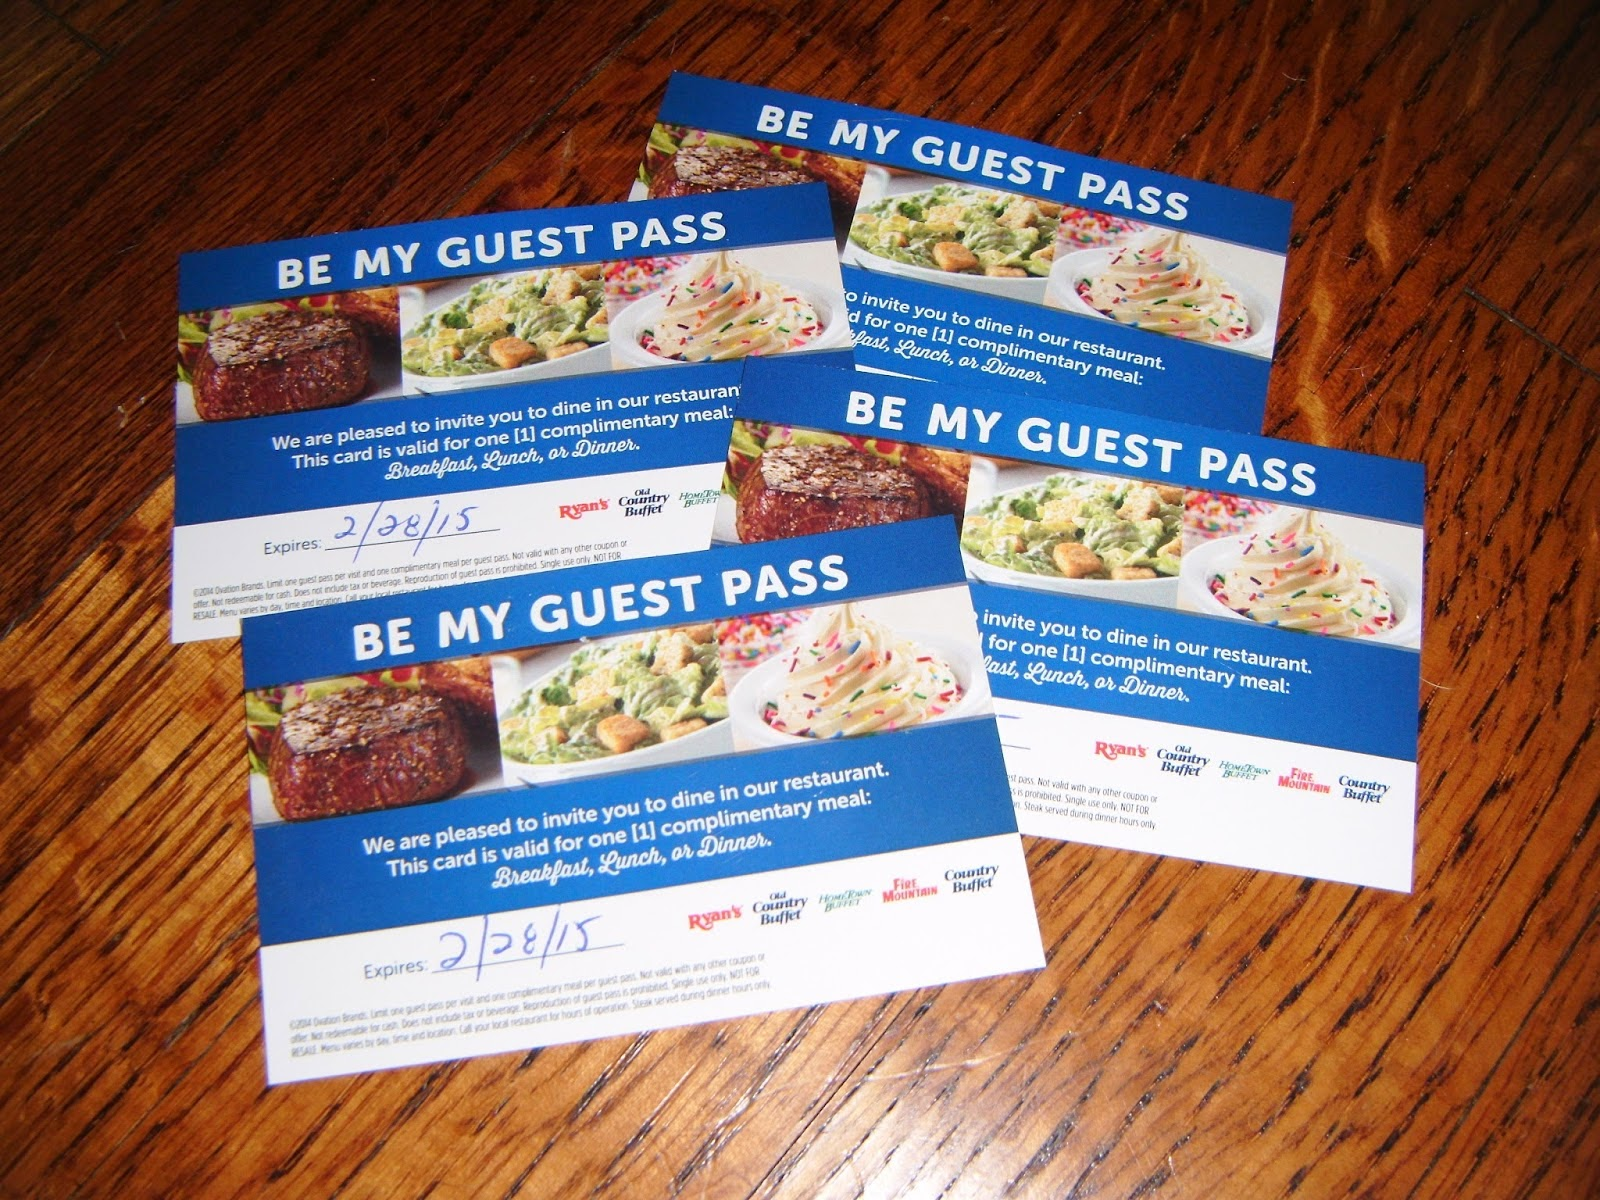 8 Weeks of Giveaways Week #2: Family Meal Pass Giveaway ends 4/14